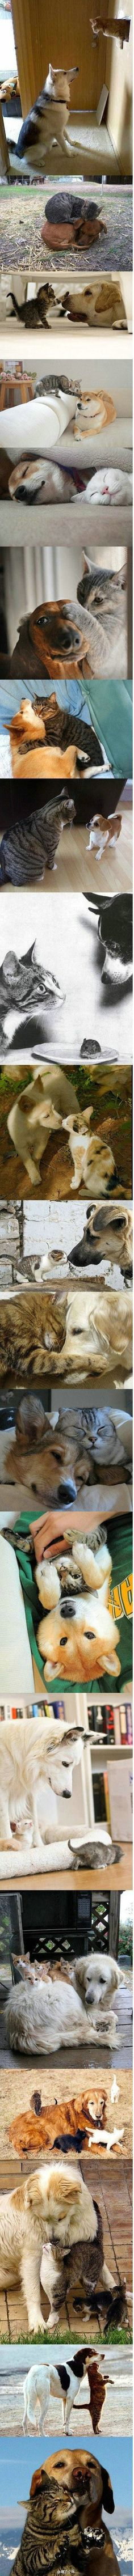 The amazing love/bond between some dogs and cats never ceases to lift my spirit! Look at the beautiful photos and feel the love!